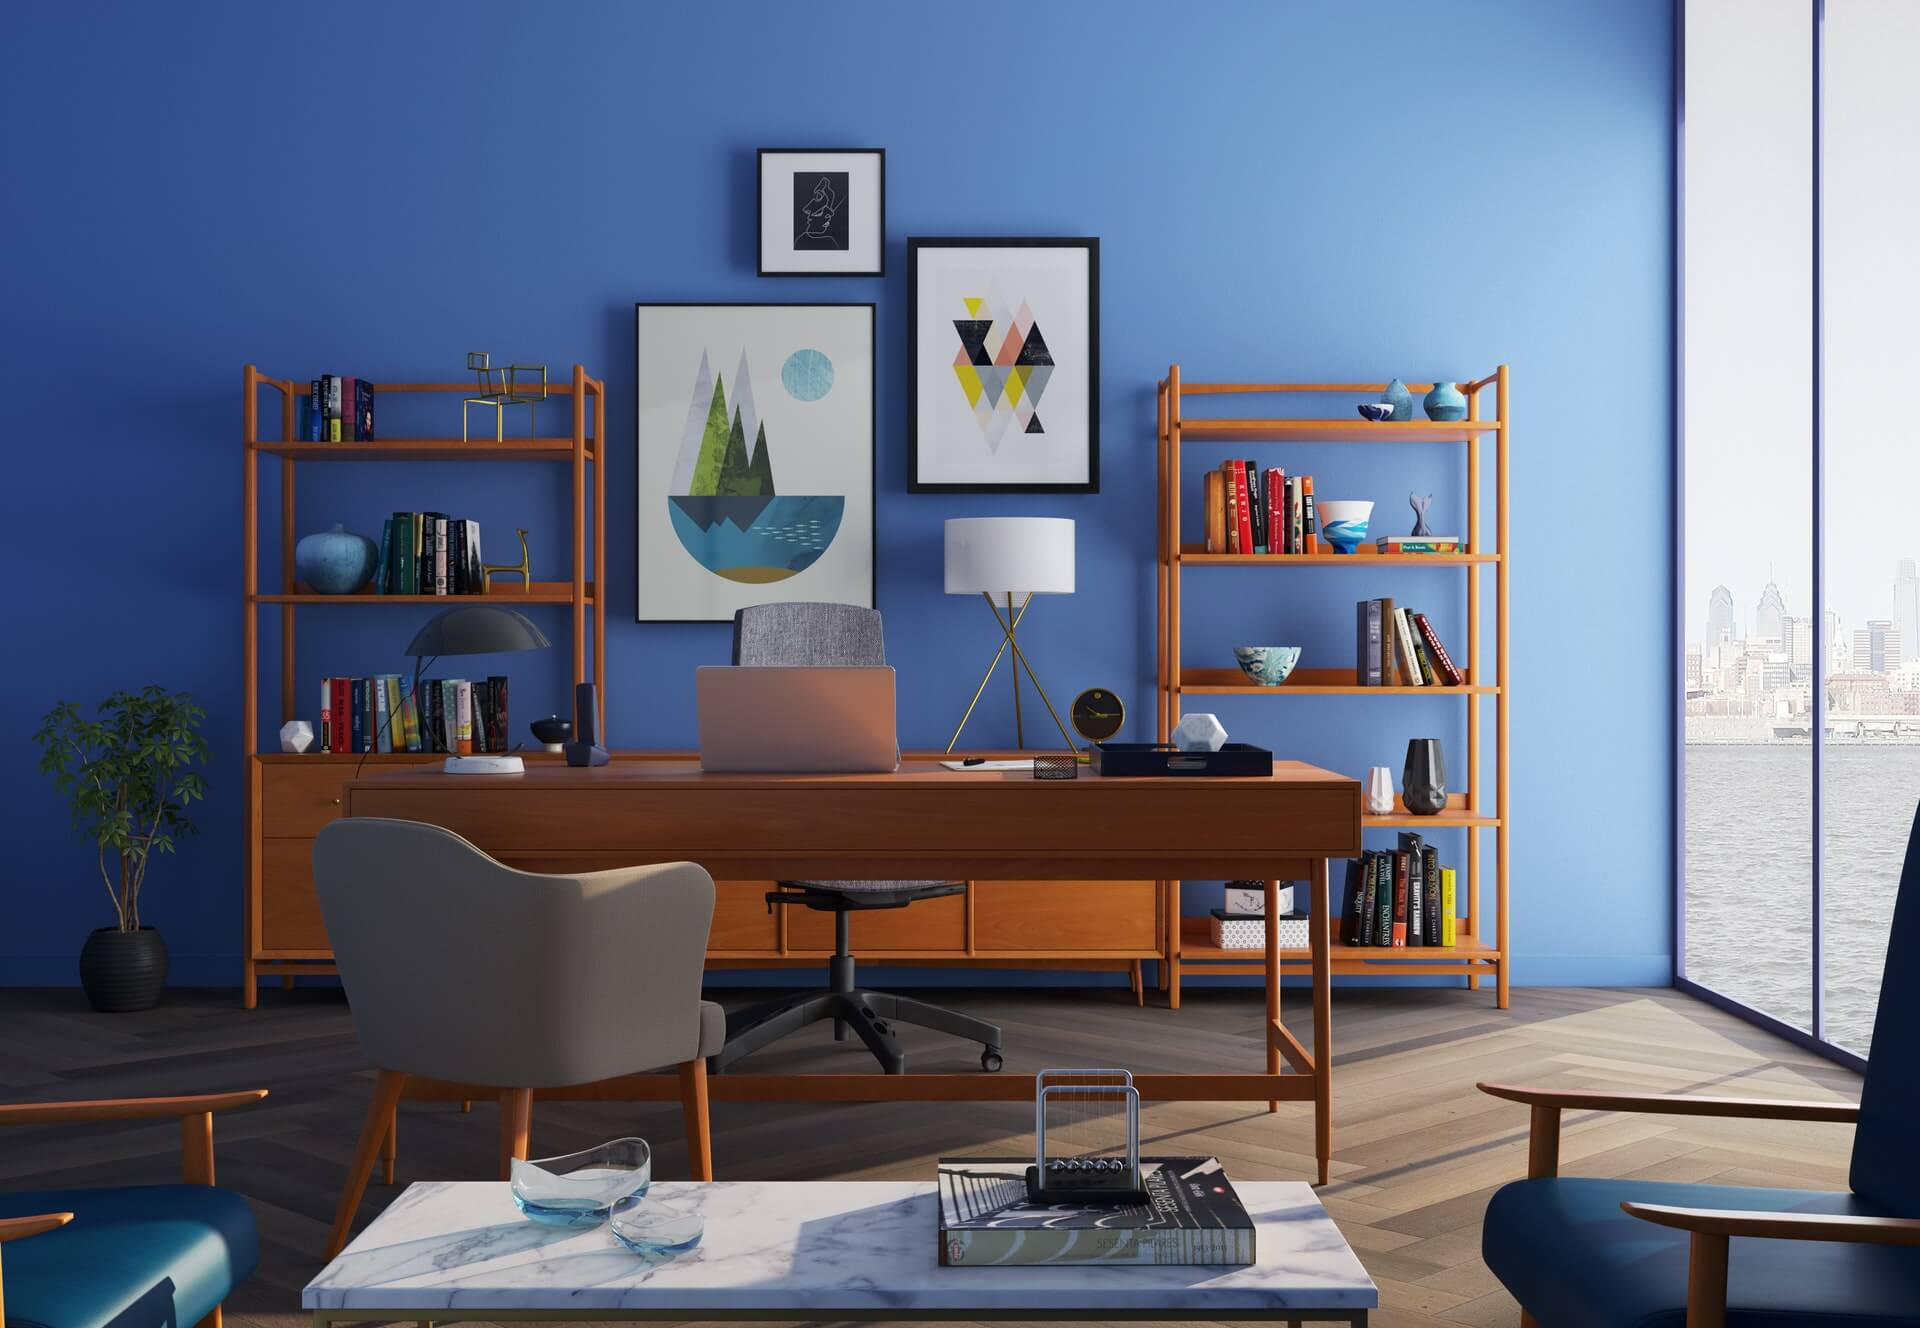 How is your health affected by office design